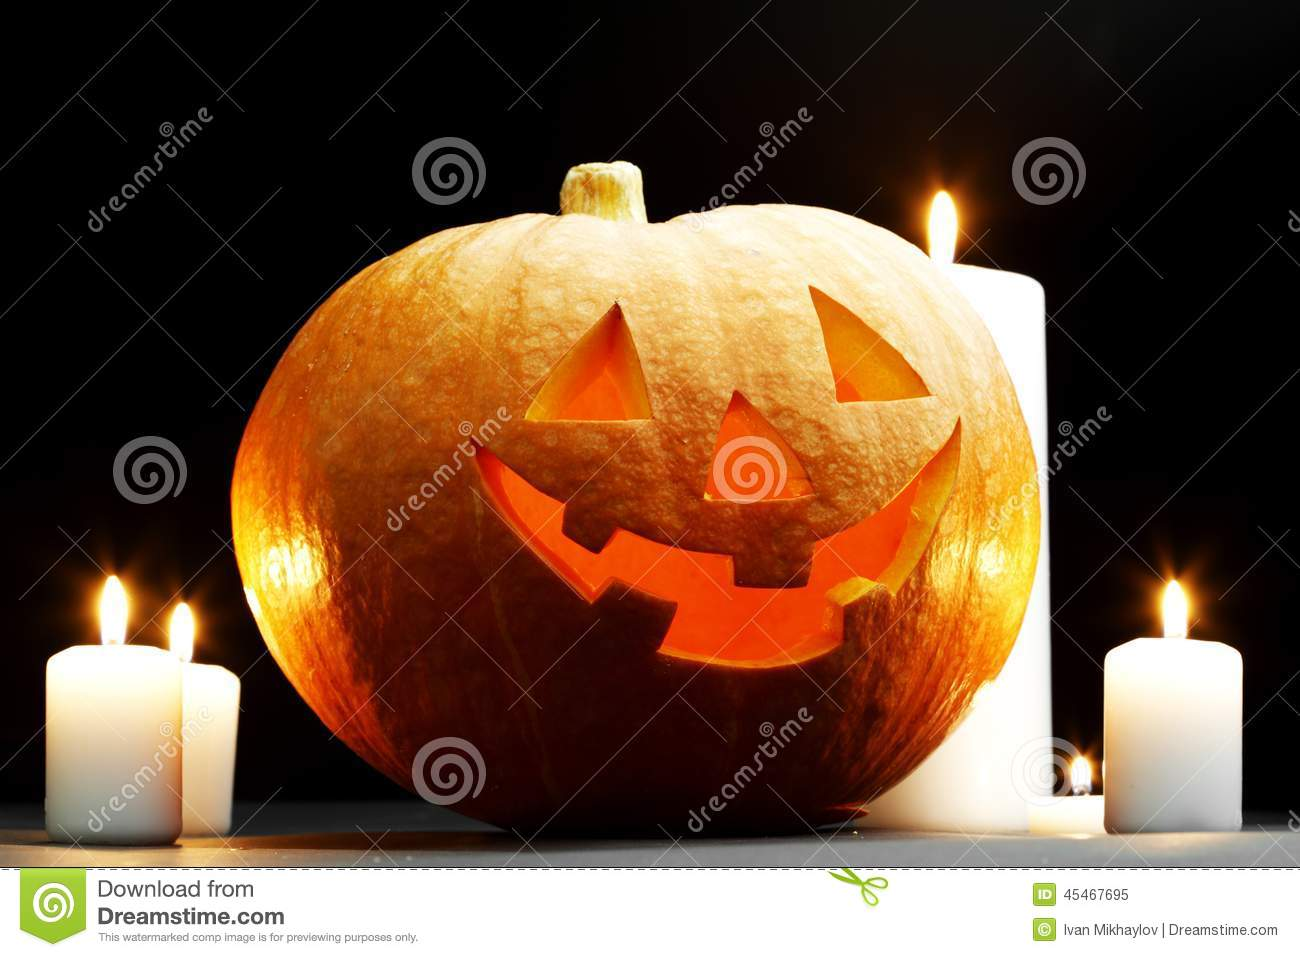 Halloween Pumpkin With Candles Stock Photo - Image: 45467695